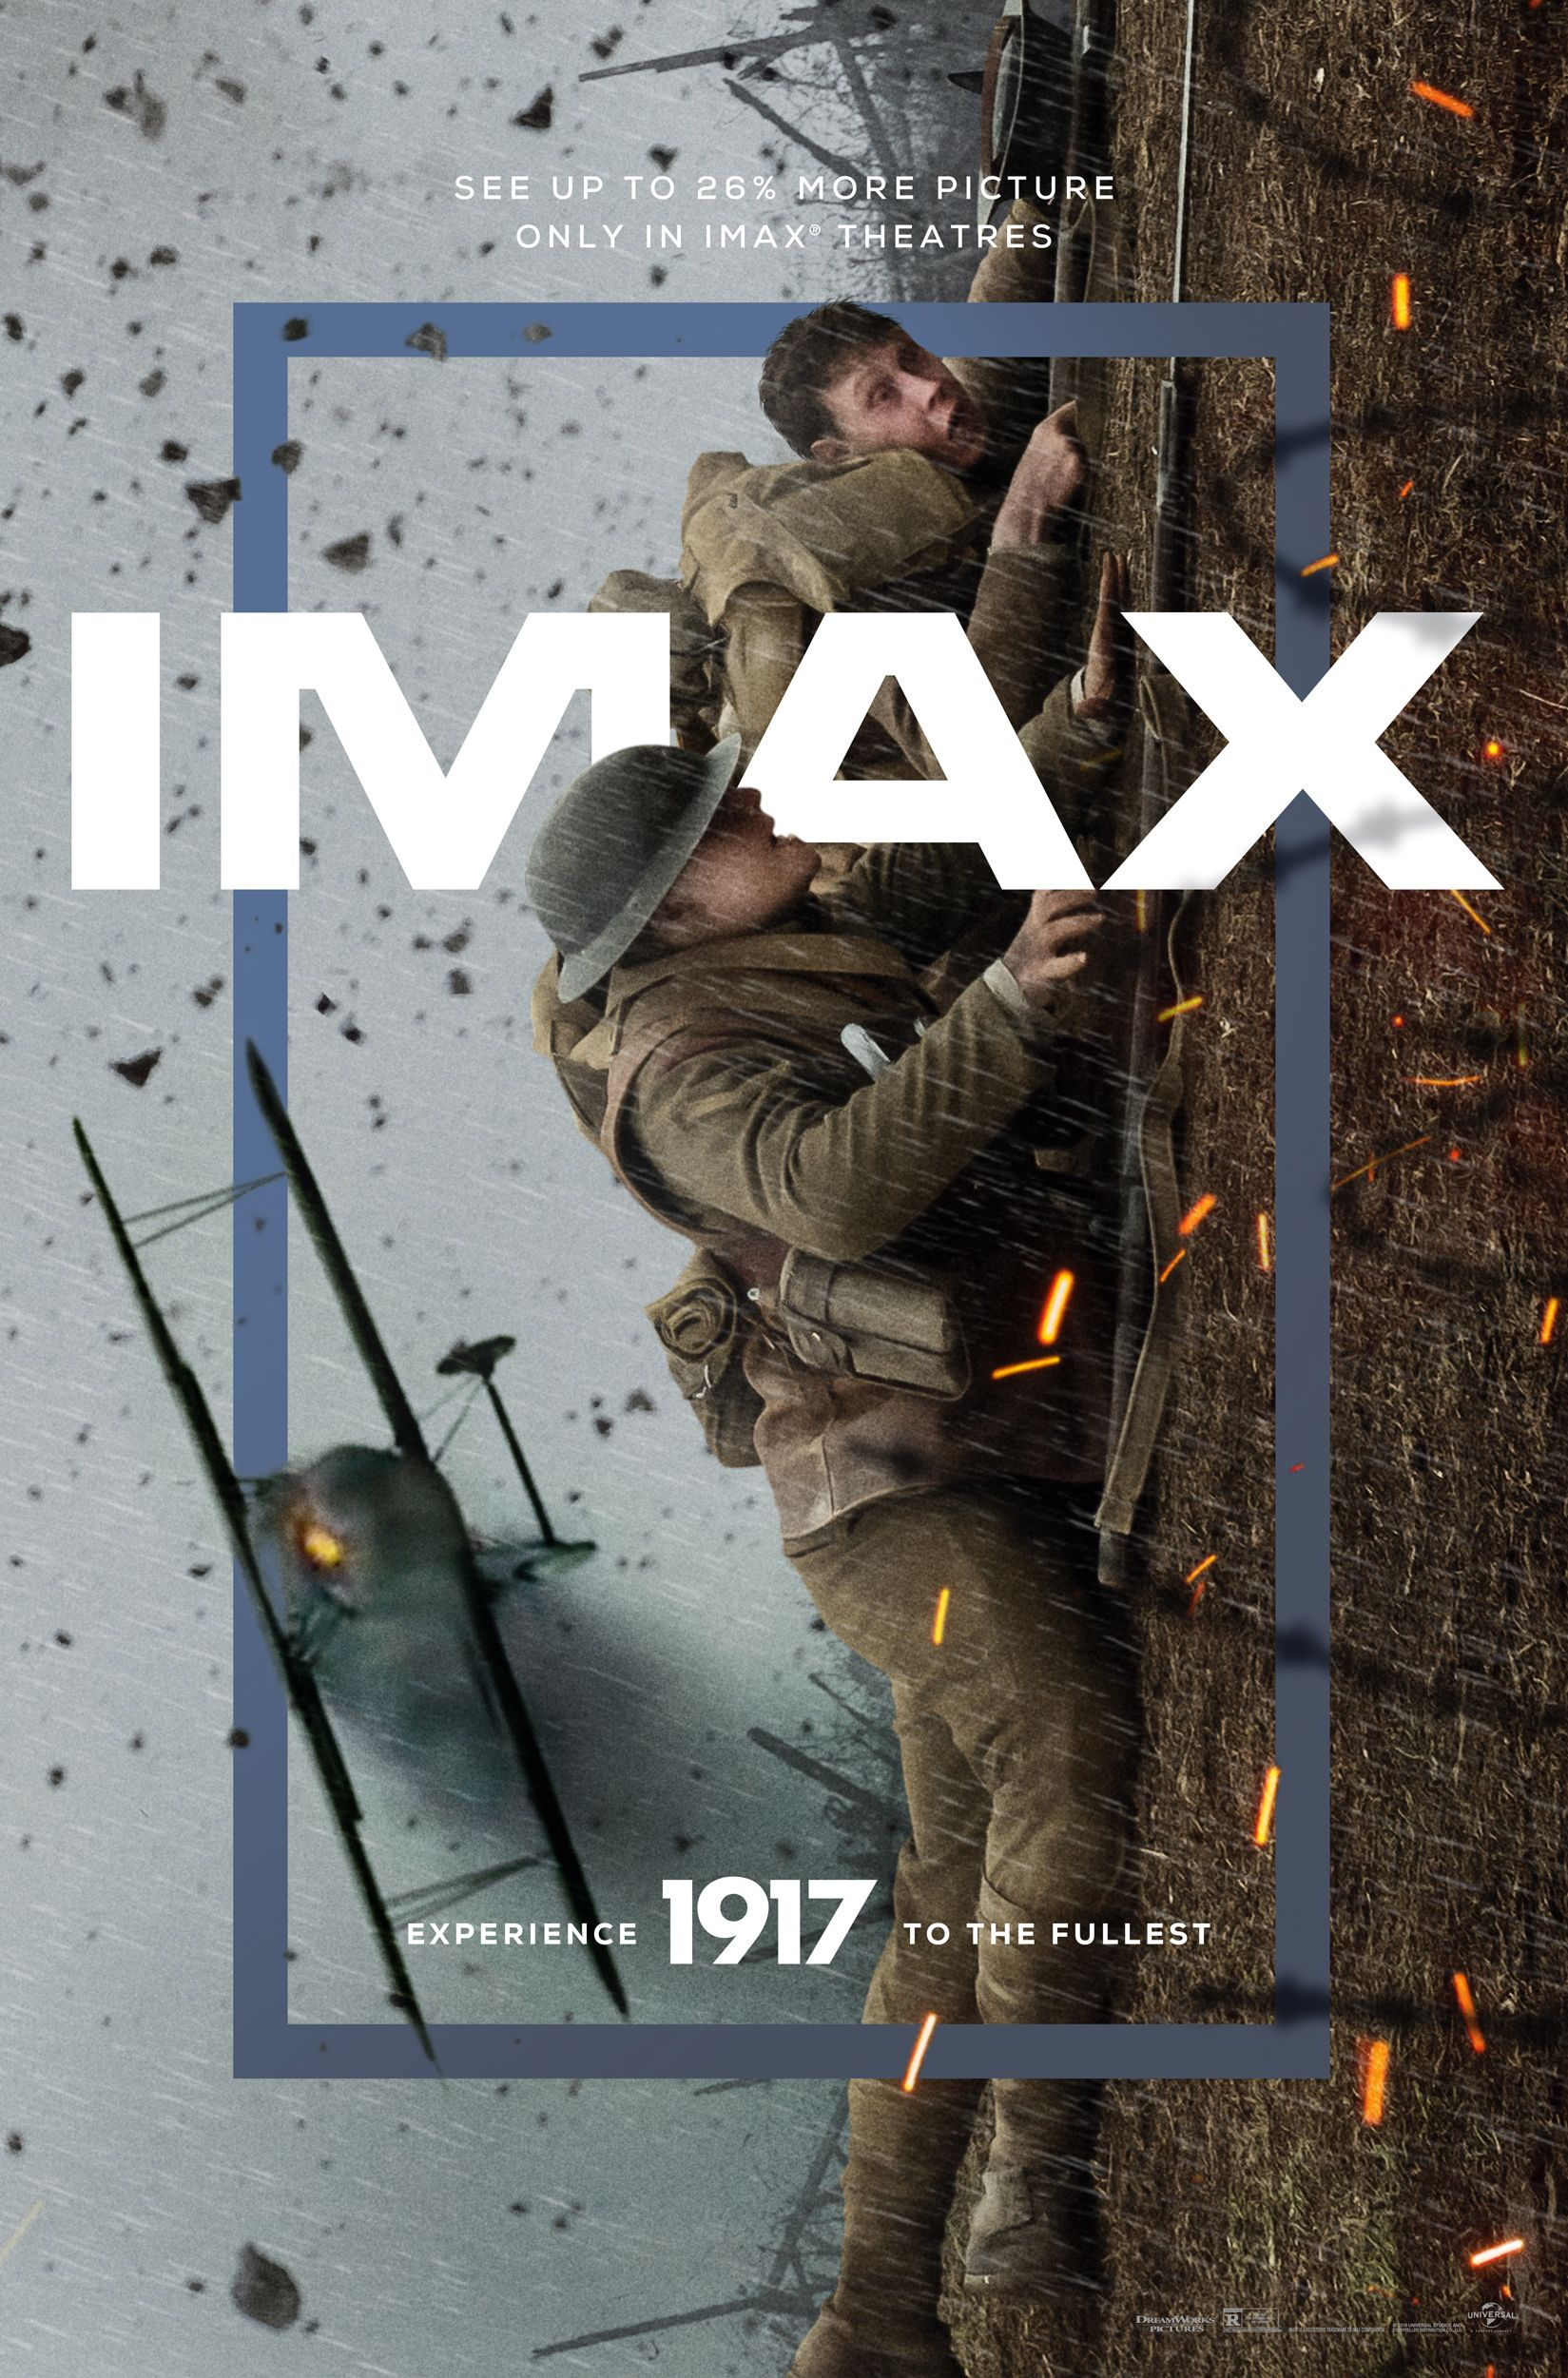 Check it out IMAX has revealed its exclusive artwork for